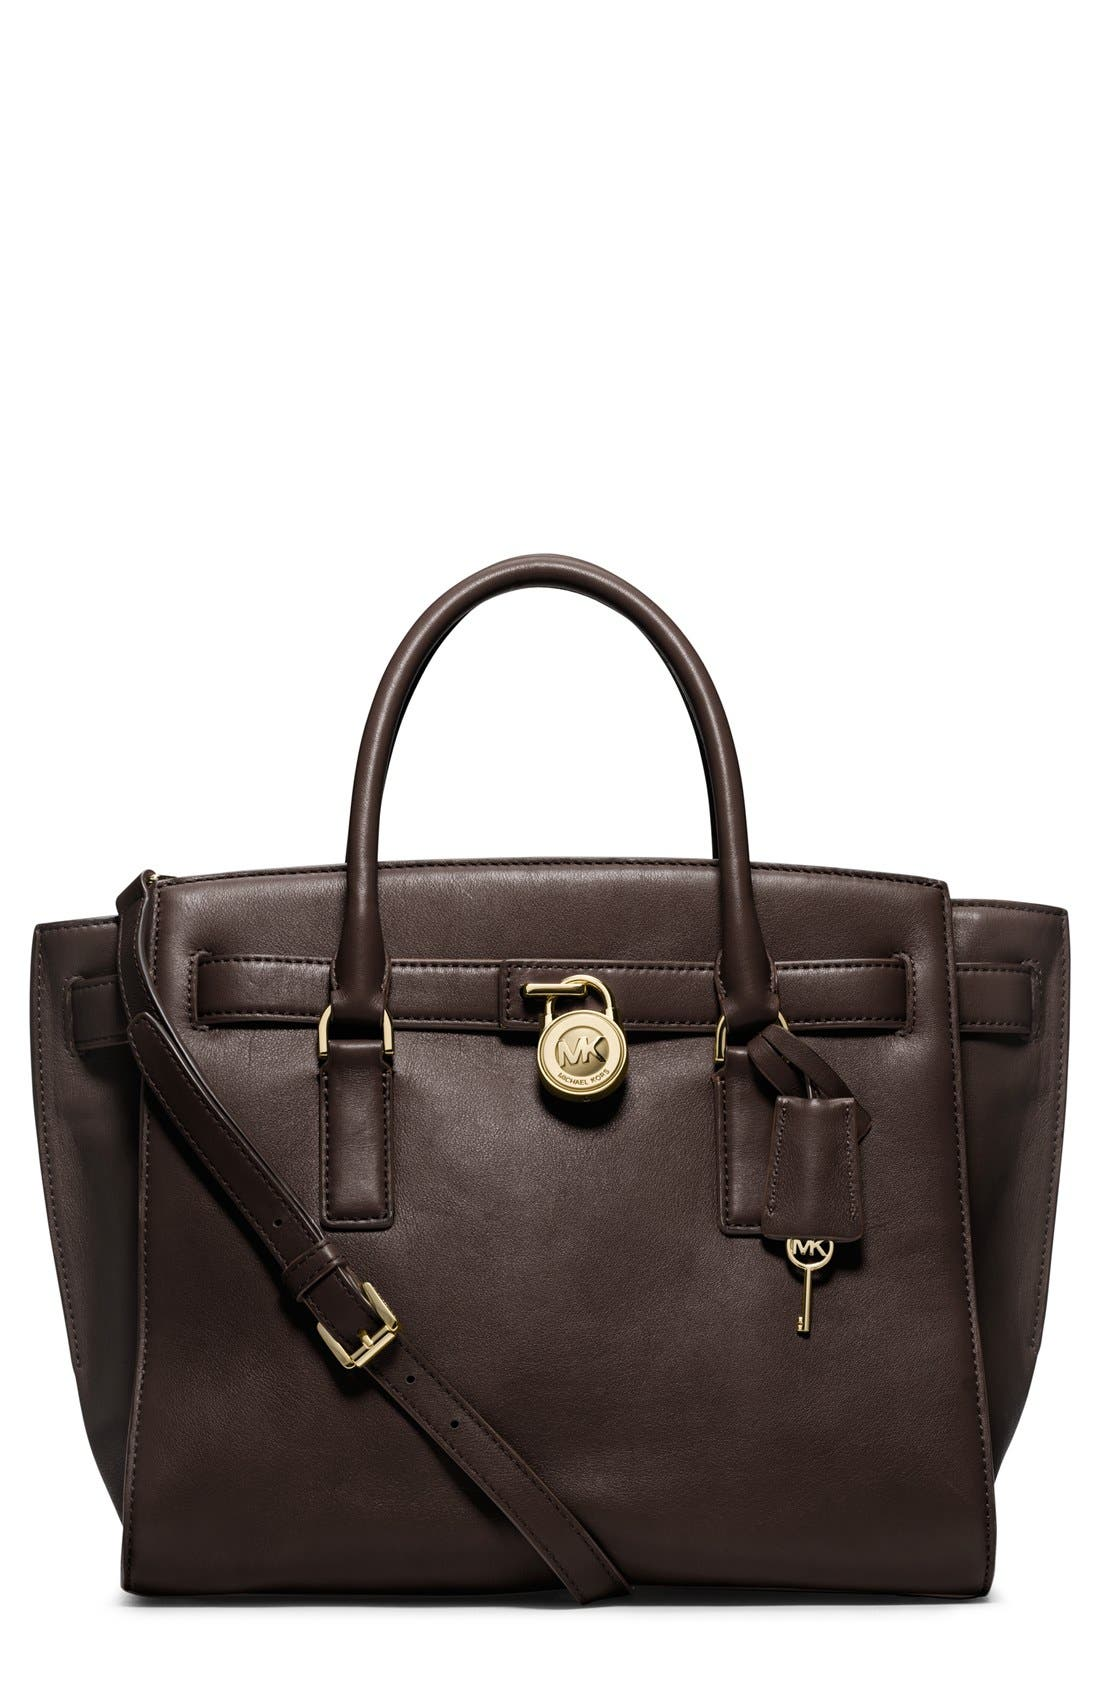 Alternate Image 1 Selected - MICHAEL Michael Kors 'Large Hamilton - Traveler' Tote